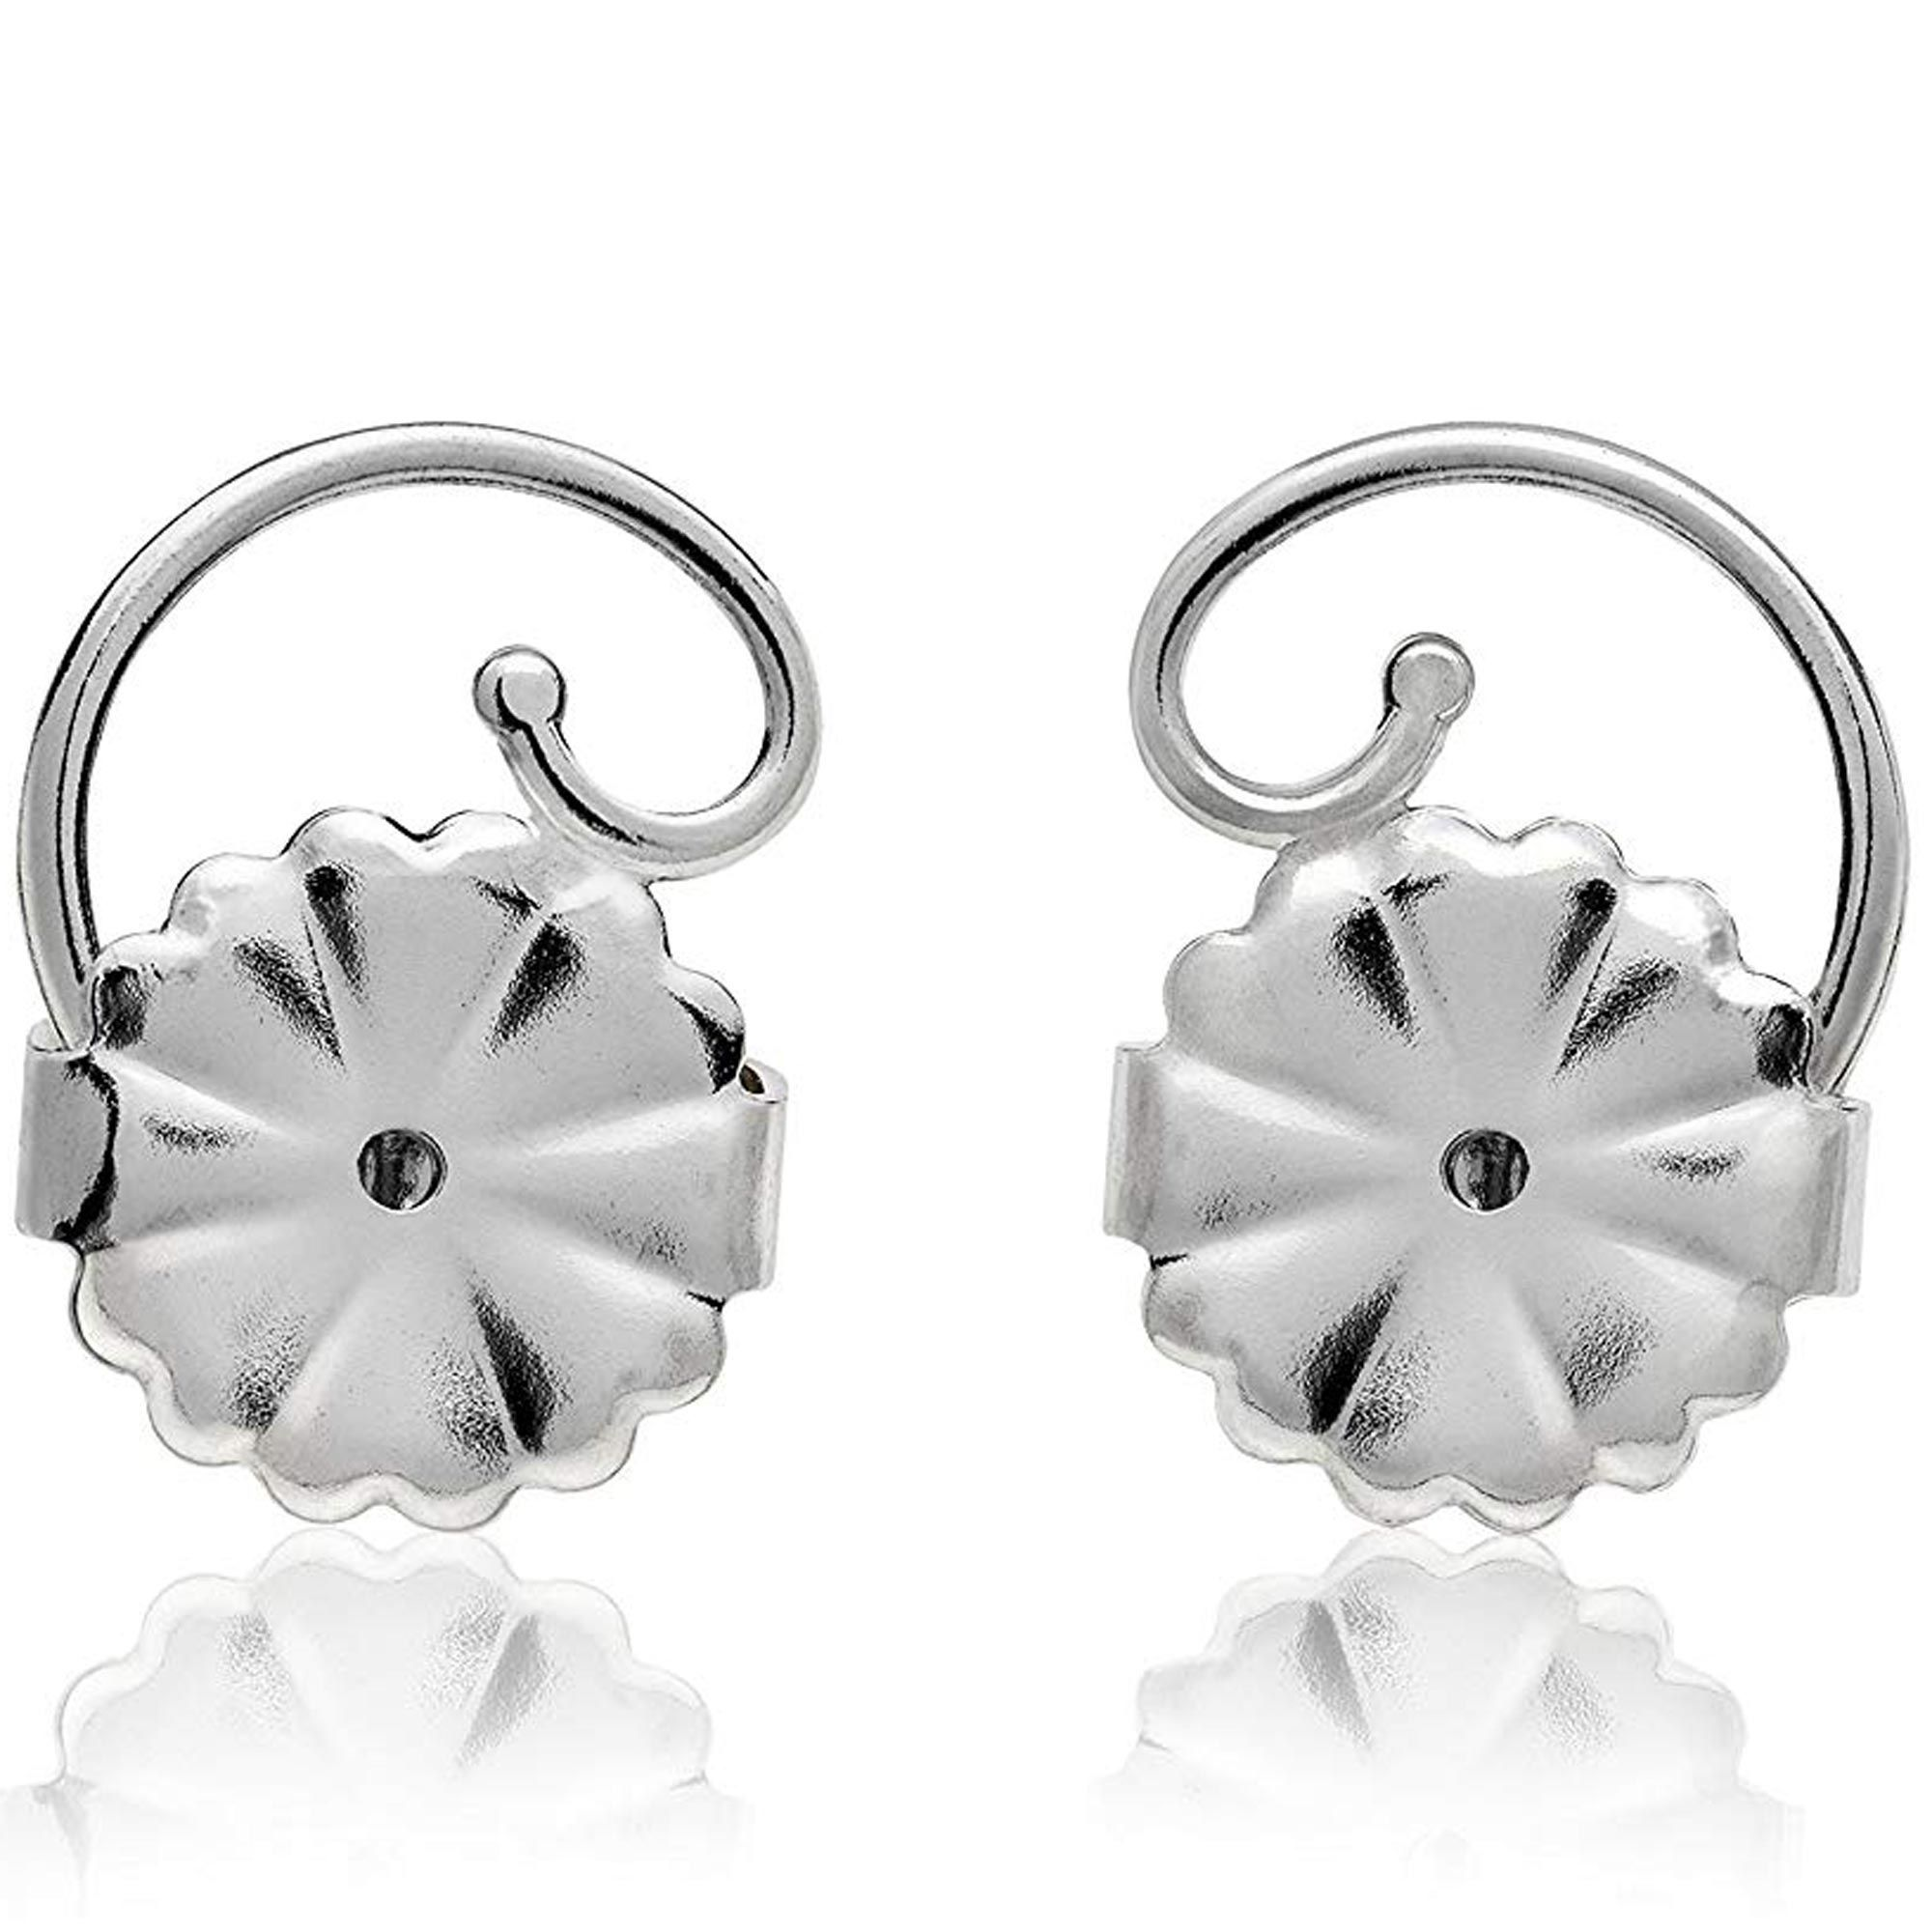 These Genius Earring Backs Changed My Life and My Lobes